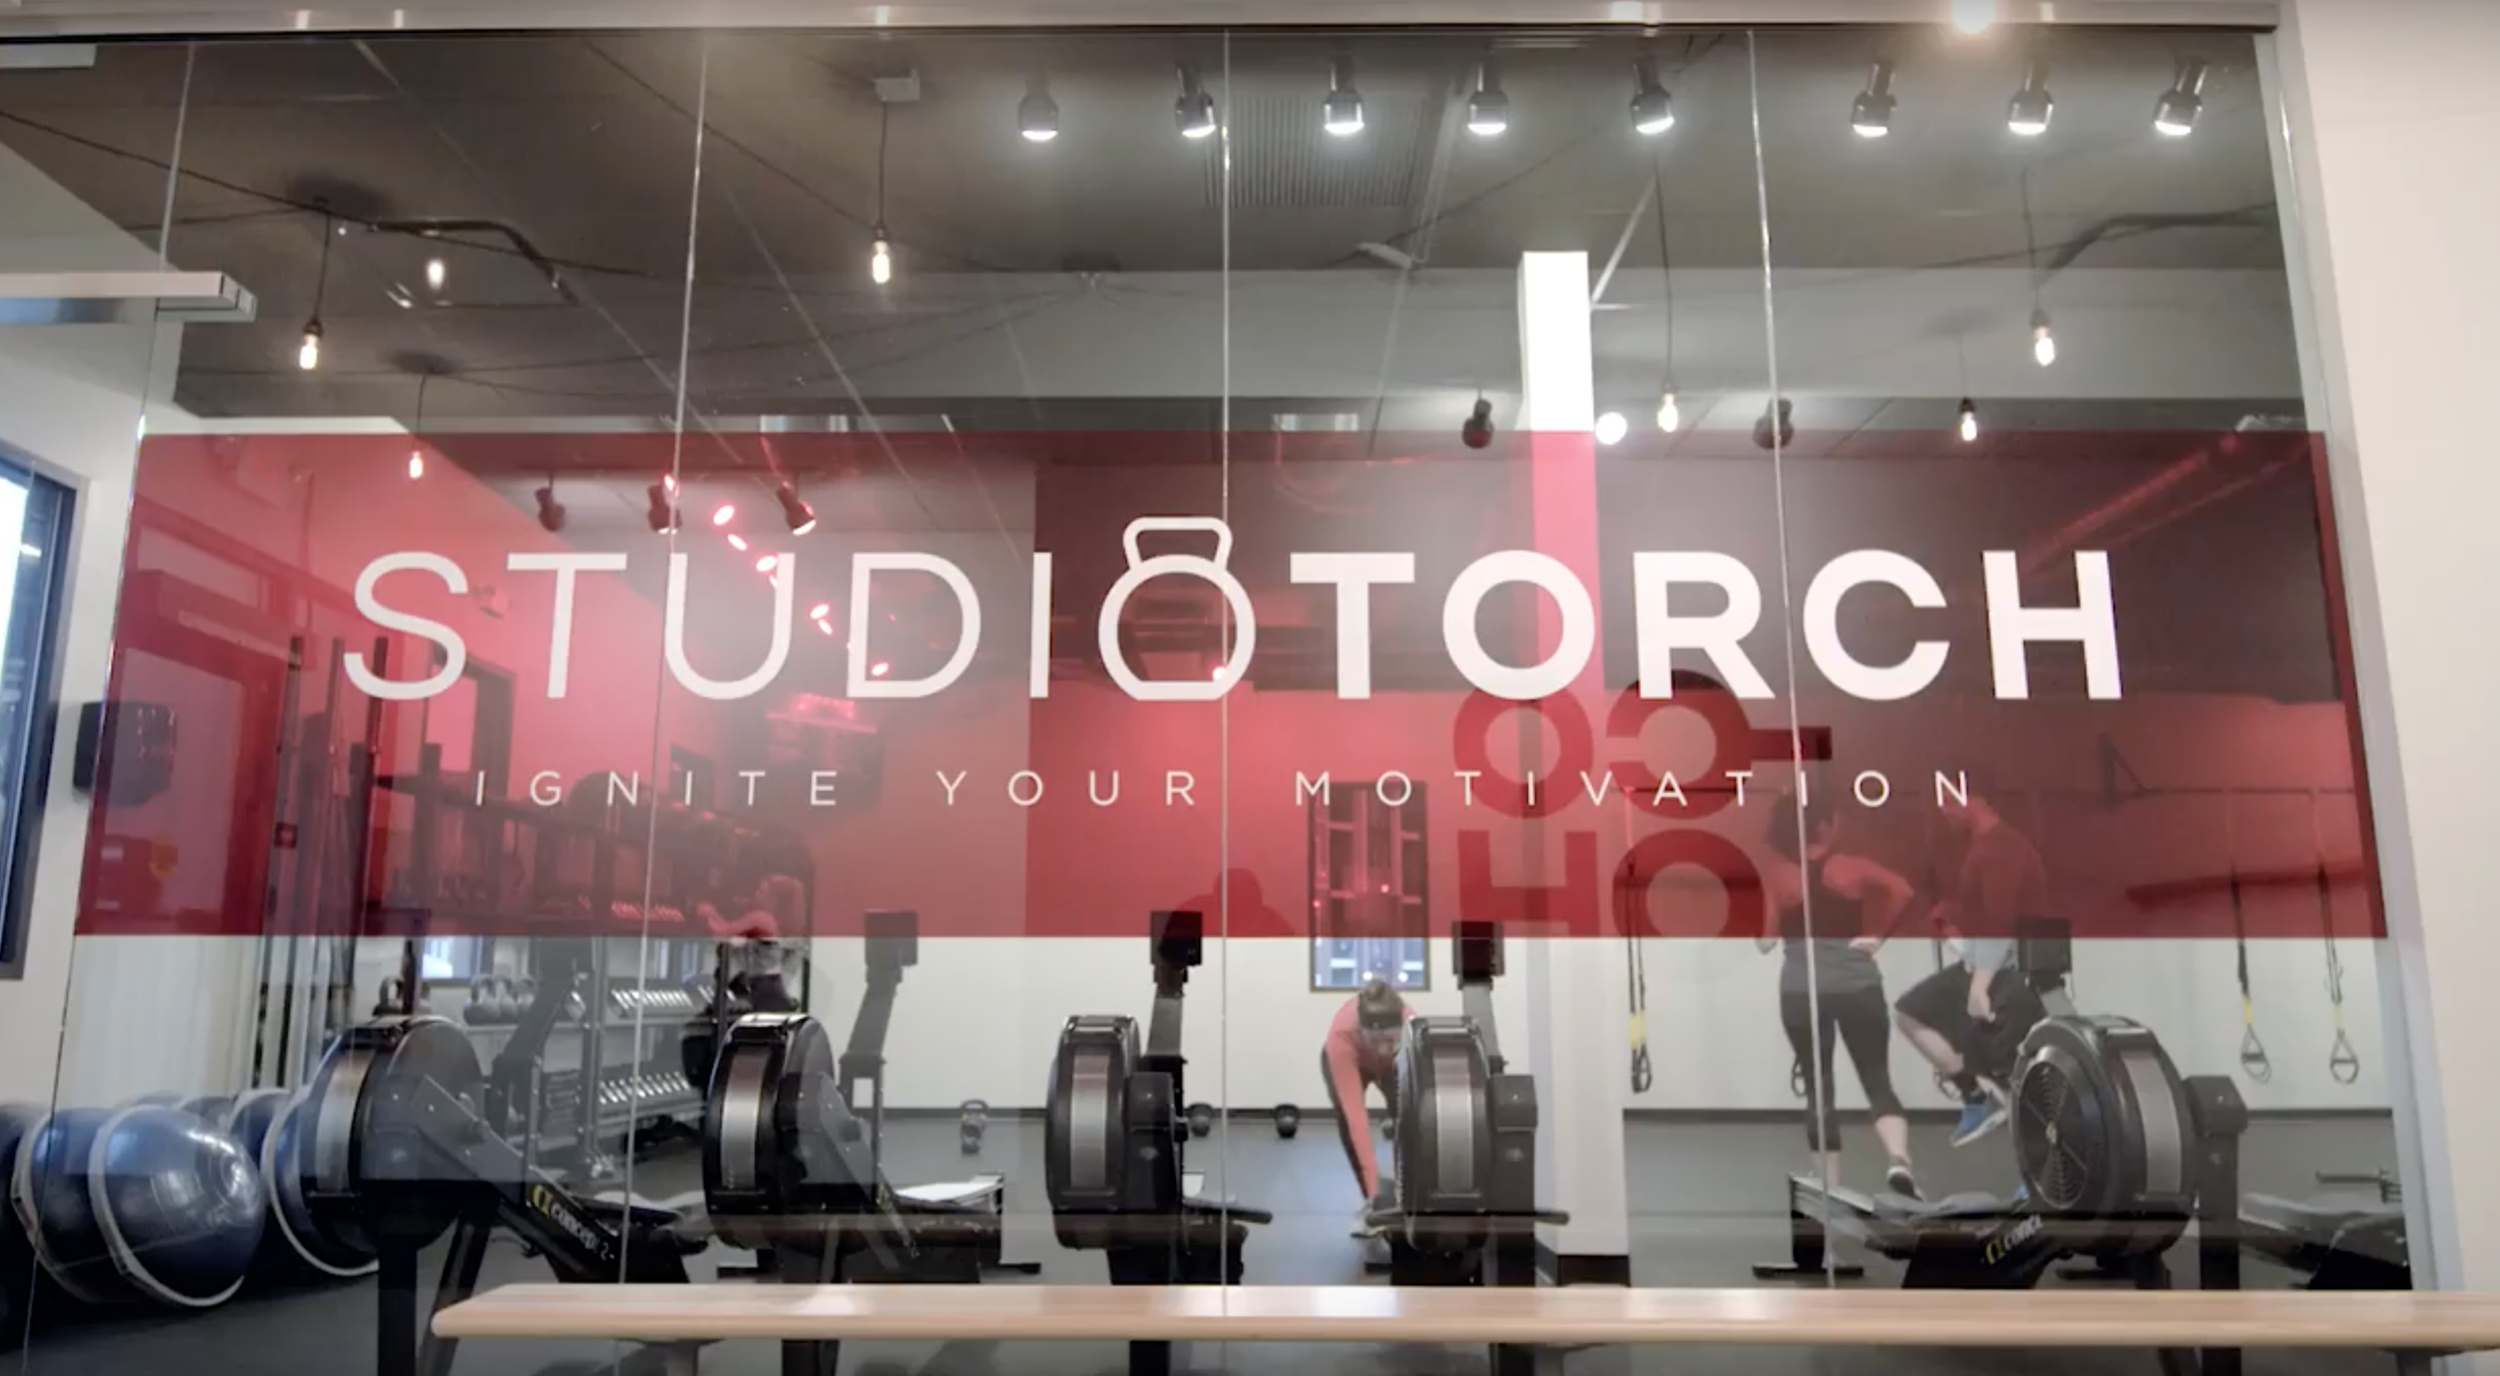 WHAT IS STUDIOTORCH? - Our classes include a mixture of intense interval training, heavy strength training, cardio exercises, and low-impact training movements. We utilize a wide variety of formats, such as: Tabata Style, Circuits, AMRAP, and Time Capped Intervals. These formats keep you constantly moving; you never stop burning calories!